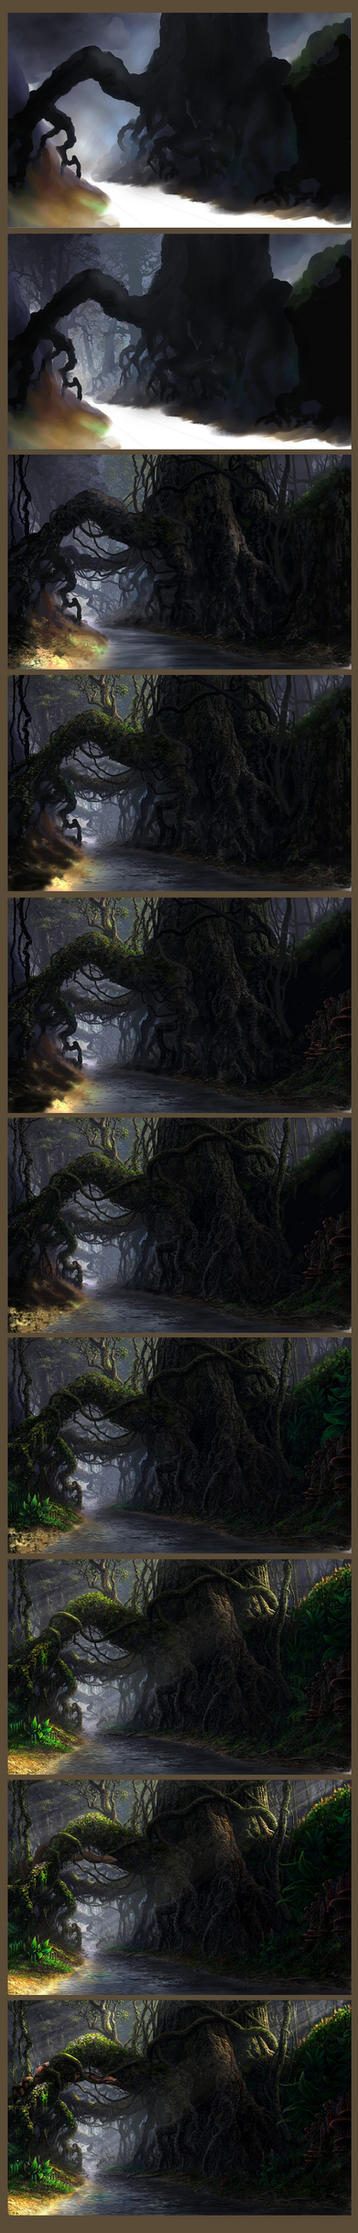 Roots - step by step by Fel-X